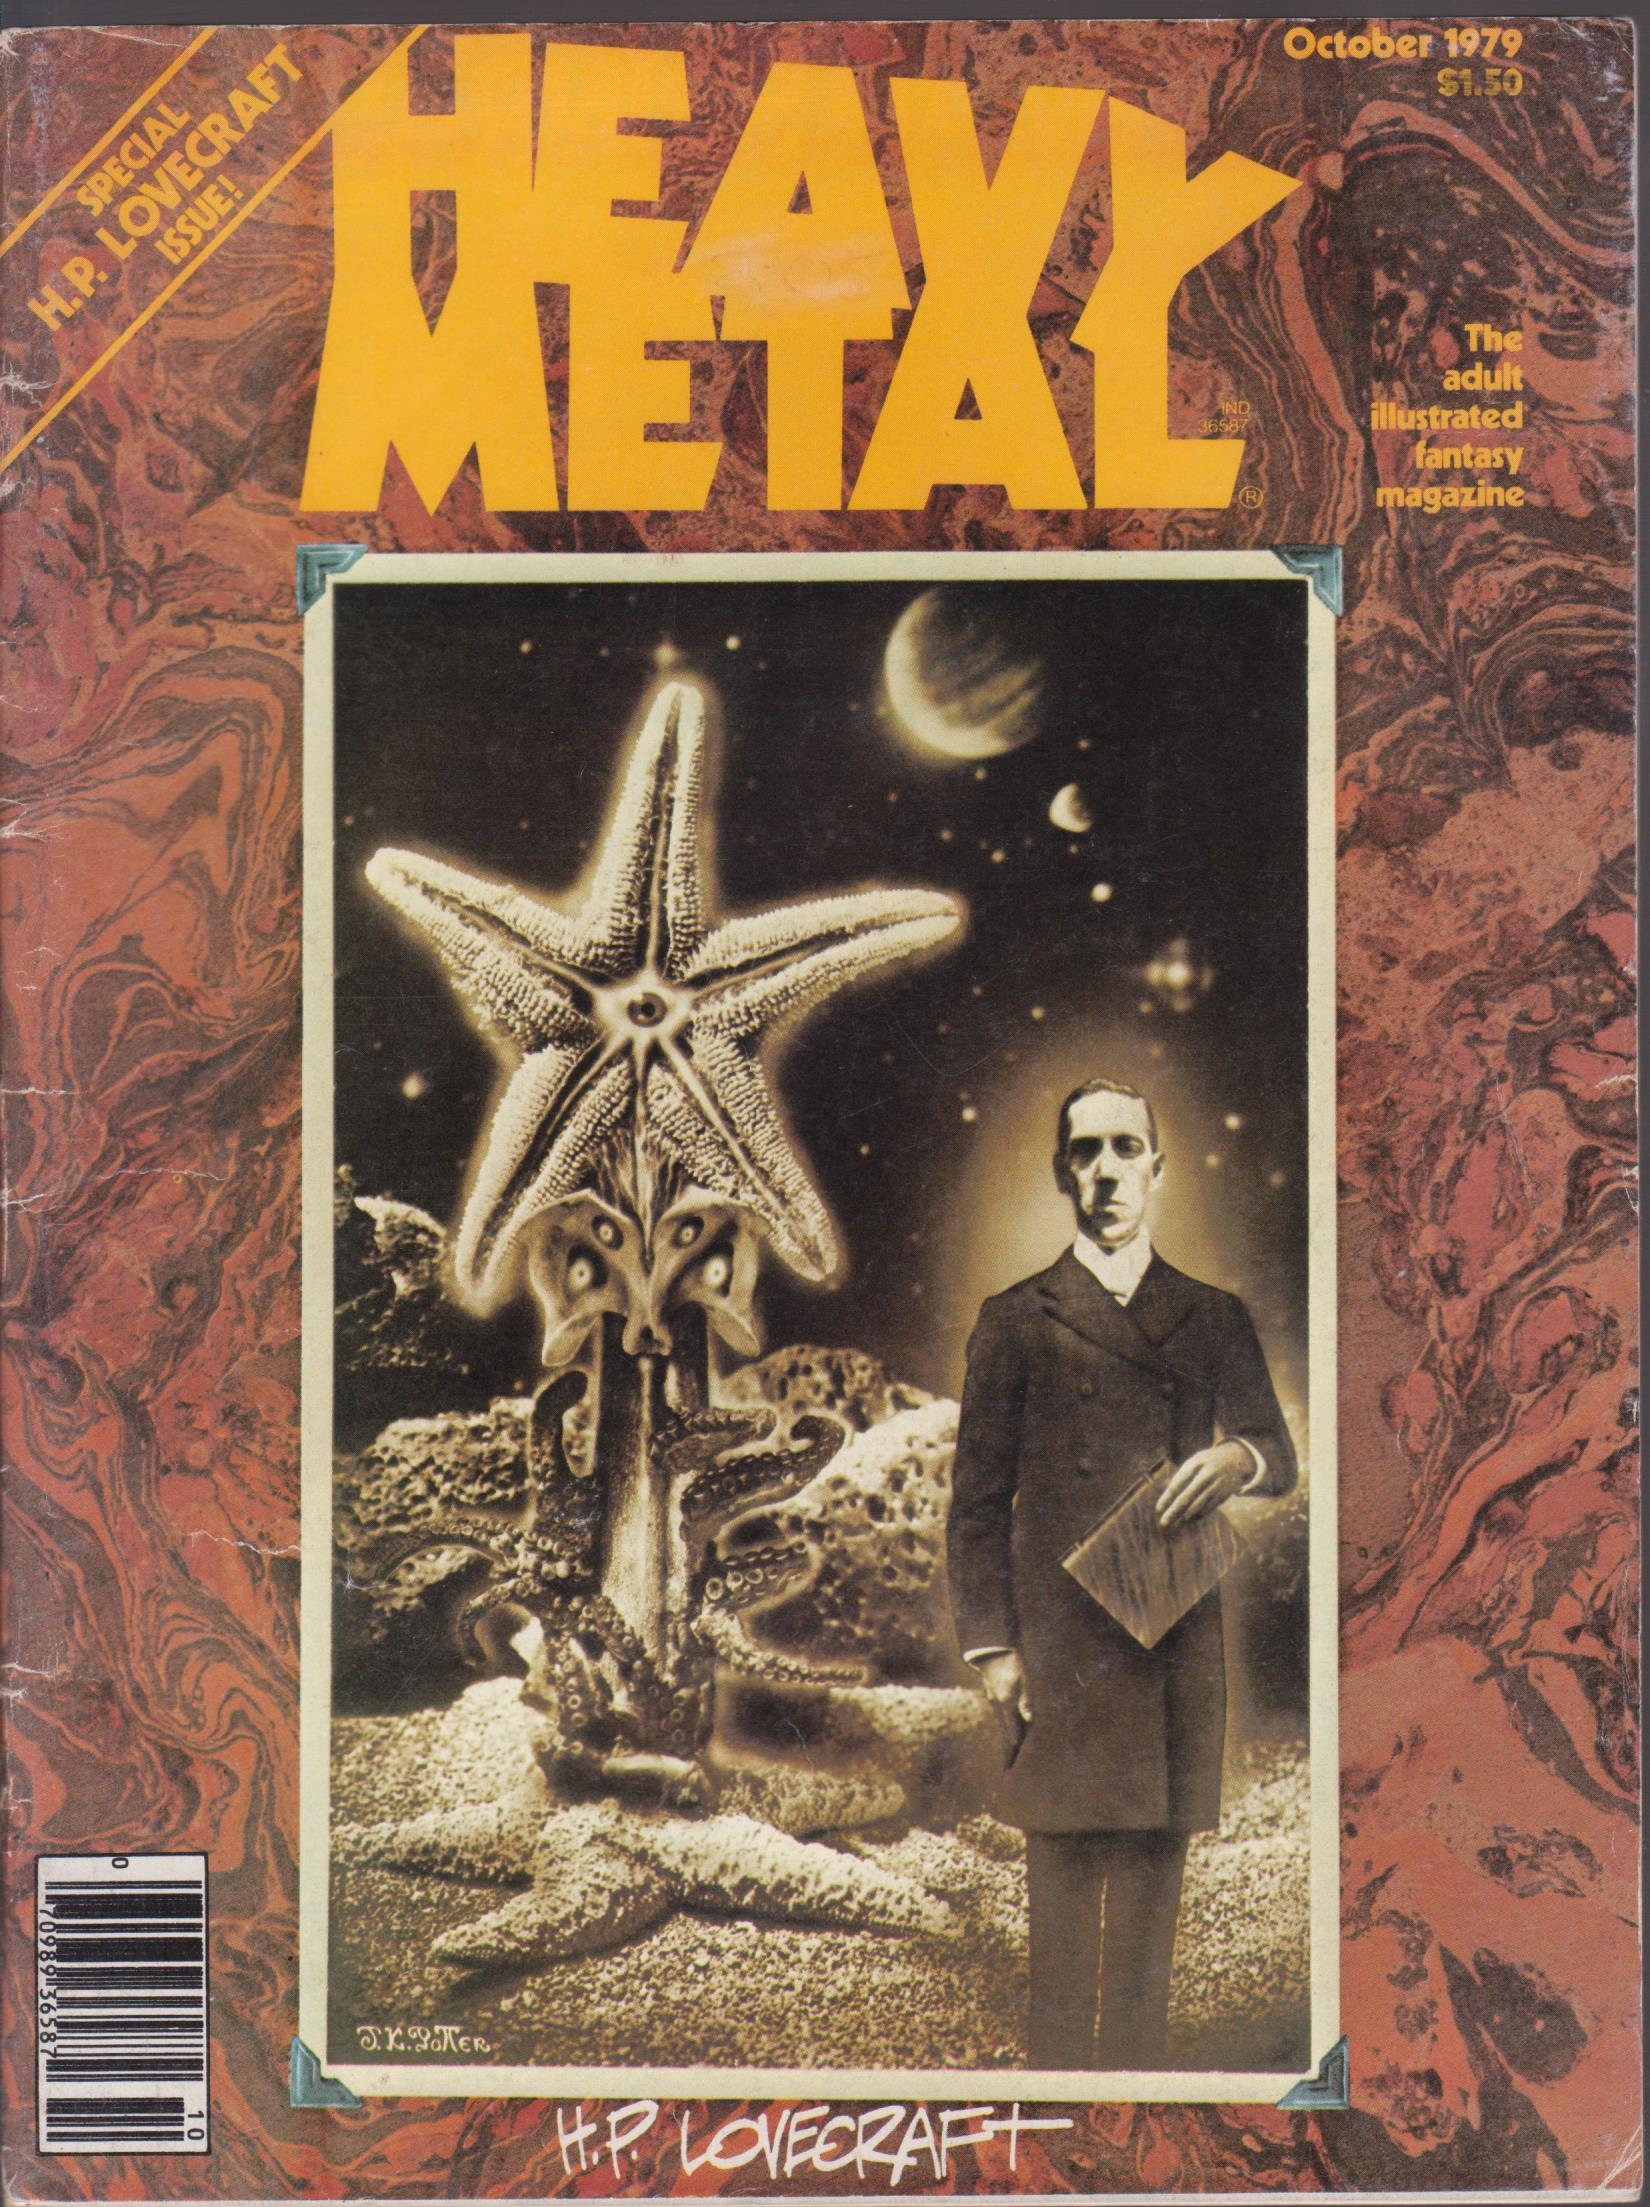 cover image of HEAVY METAL The Adult illustrated Fantasy Magazine - October 1979 - Special H P LOVECRAFT Issue